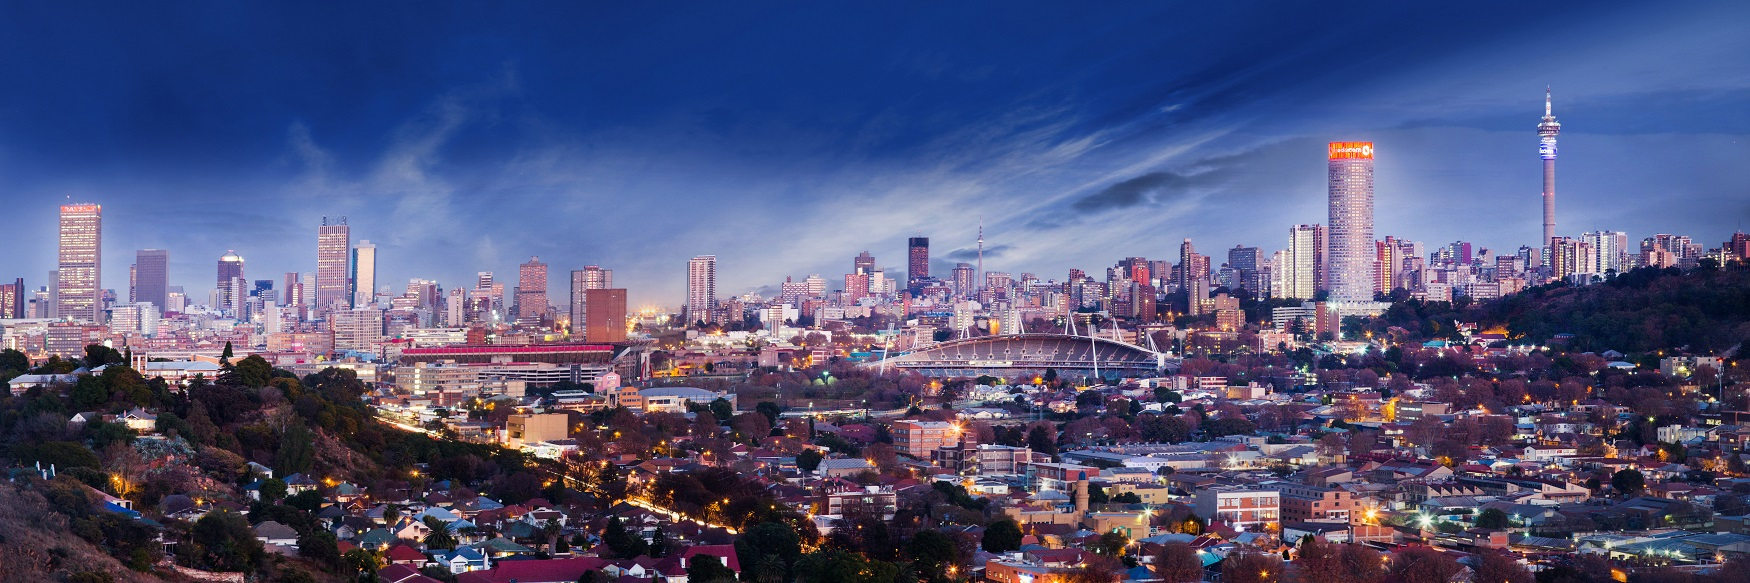 Photo of the skyline in Johannesburg with skyscrapers and sunset